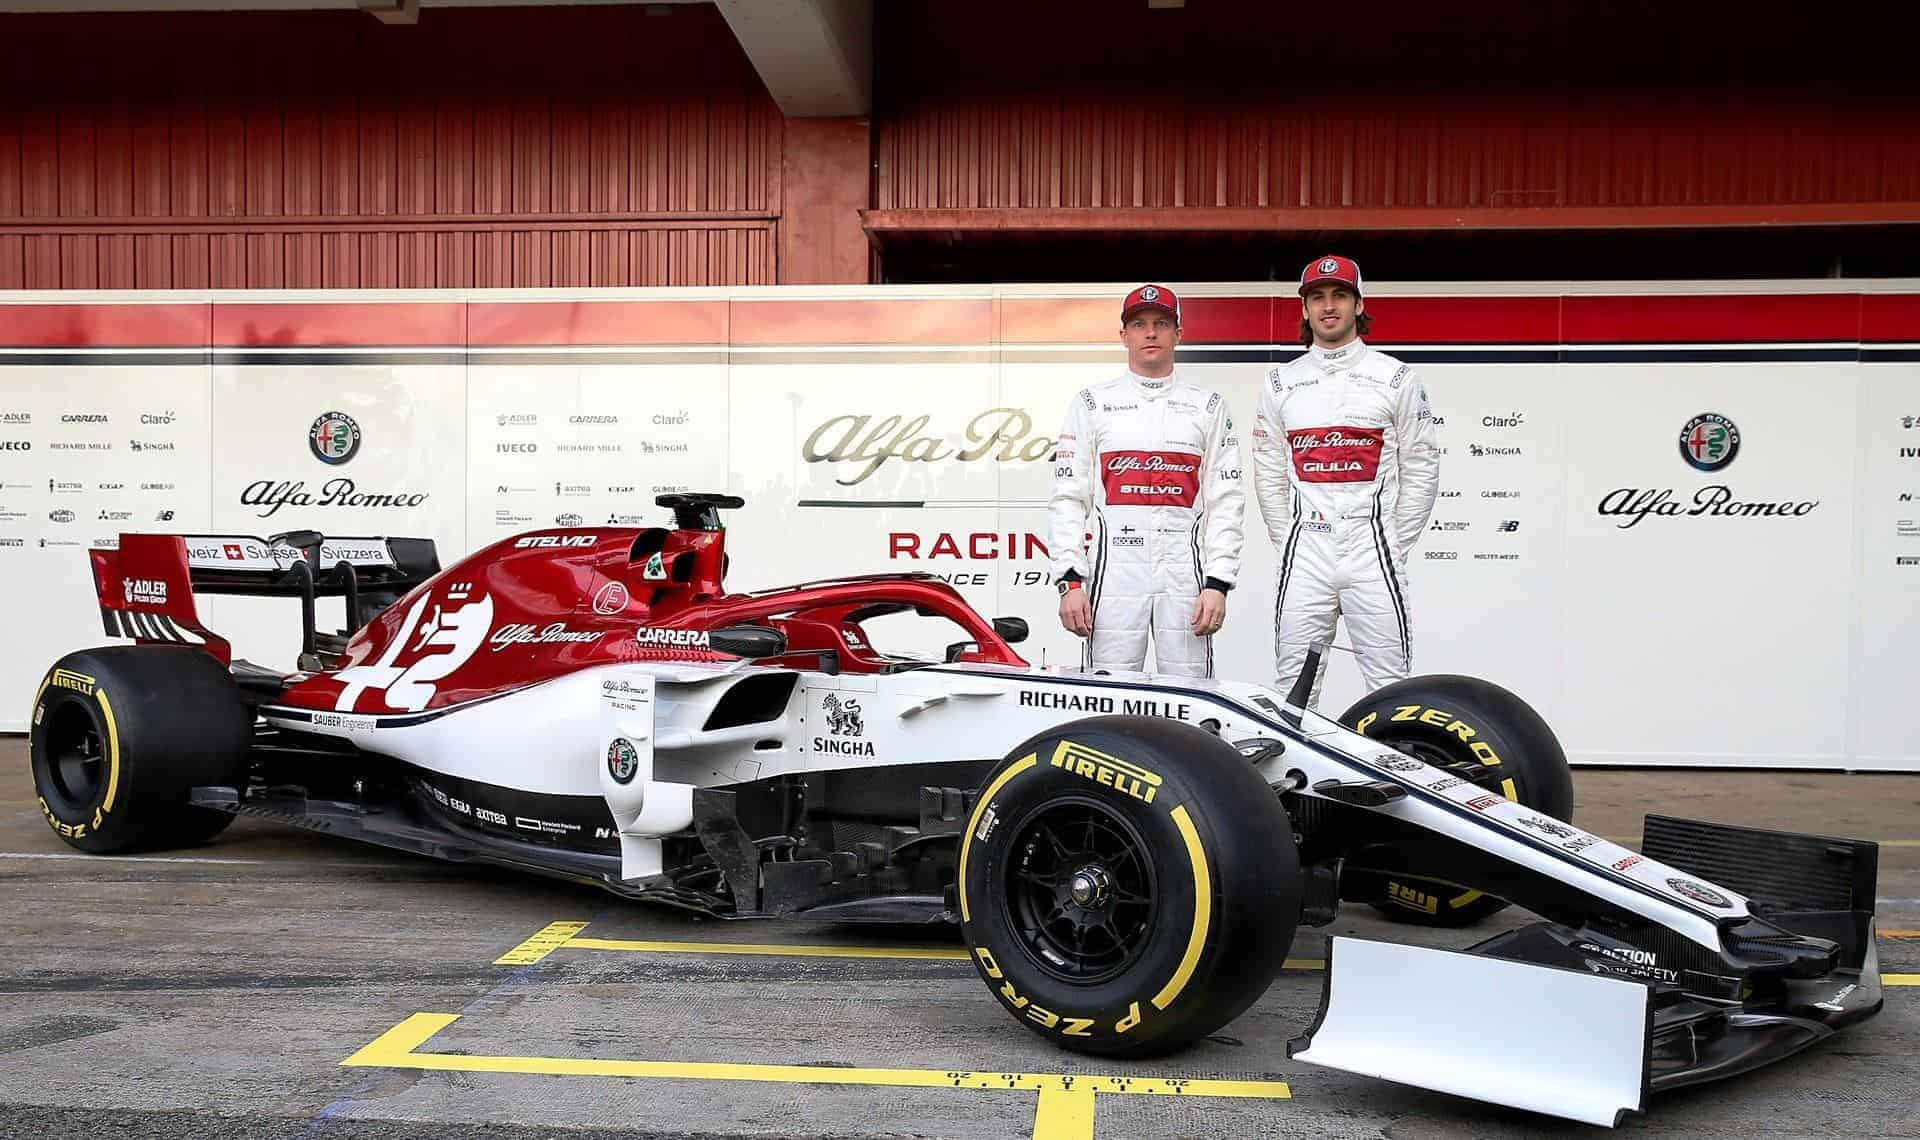 2019 Alfa Romeo Racing presentation side angle